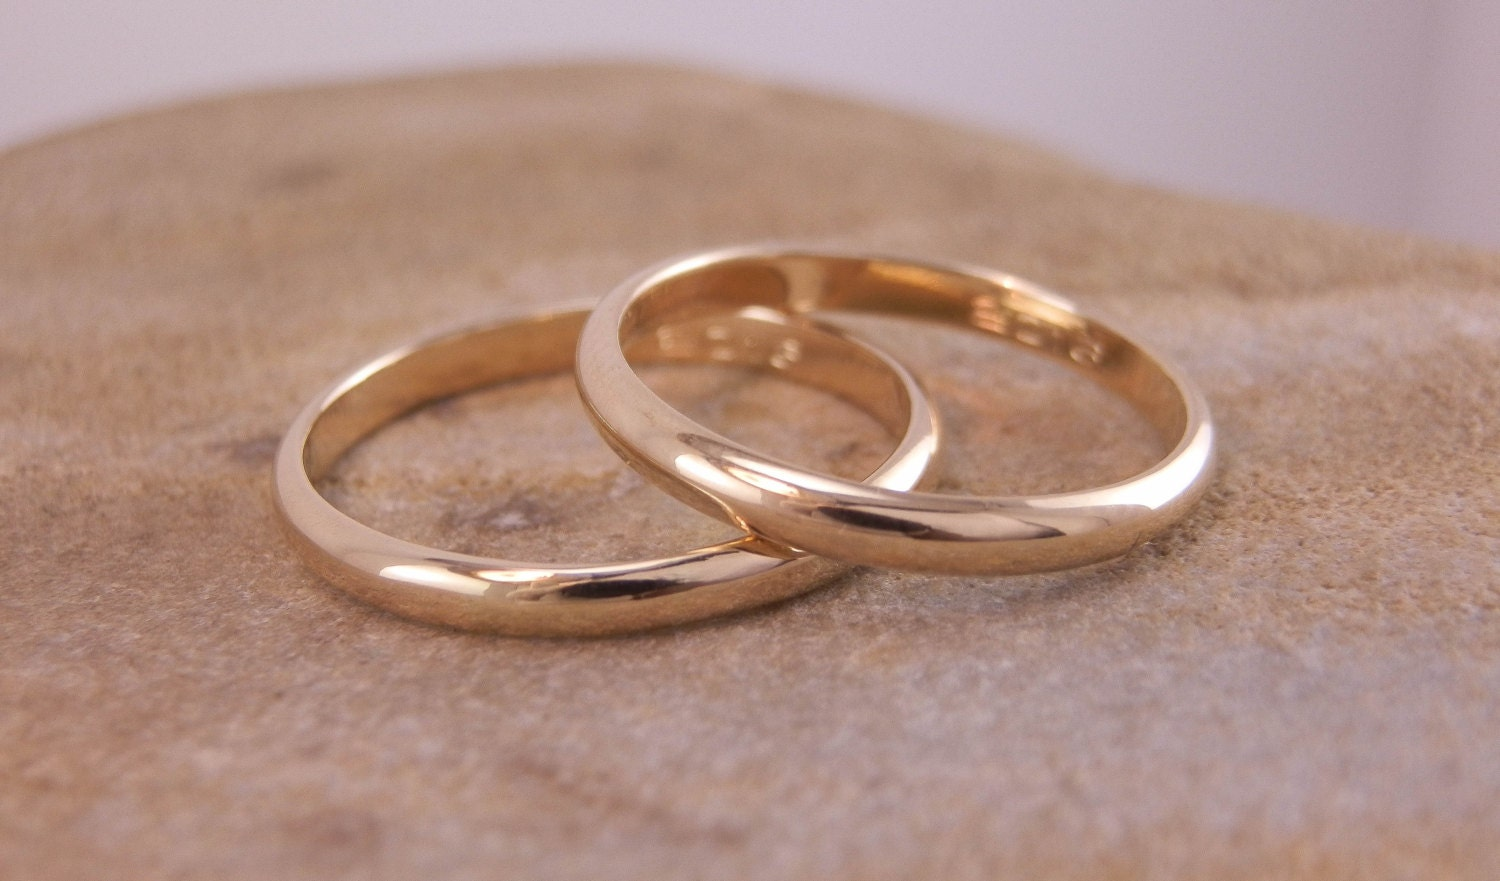 size rings of gold uk etsy large bands simple wedding ring designs band